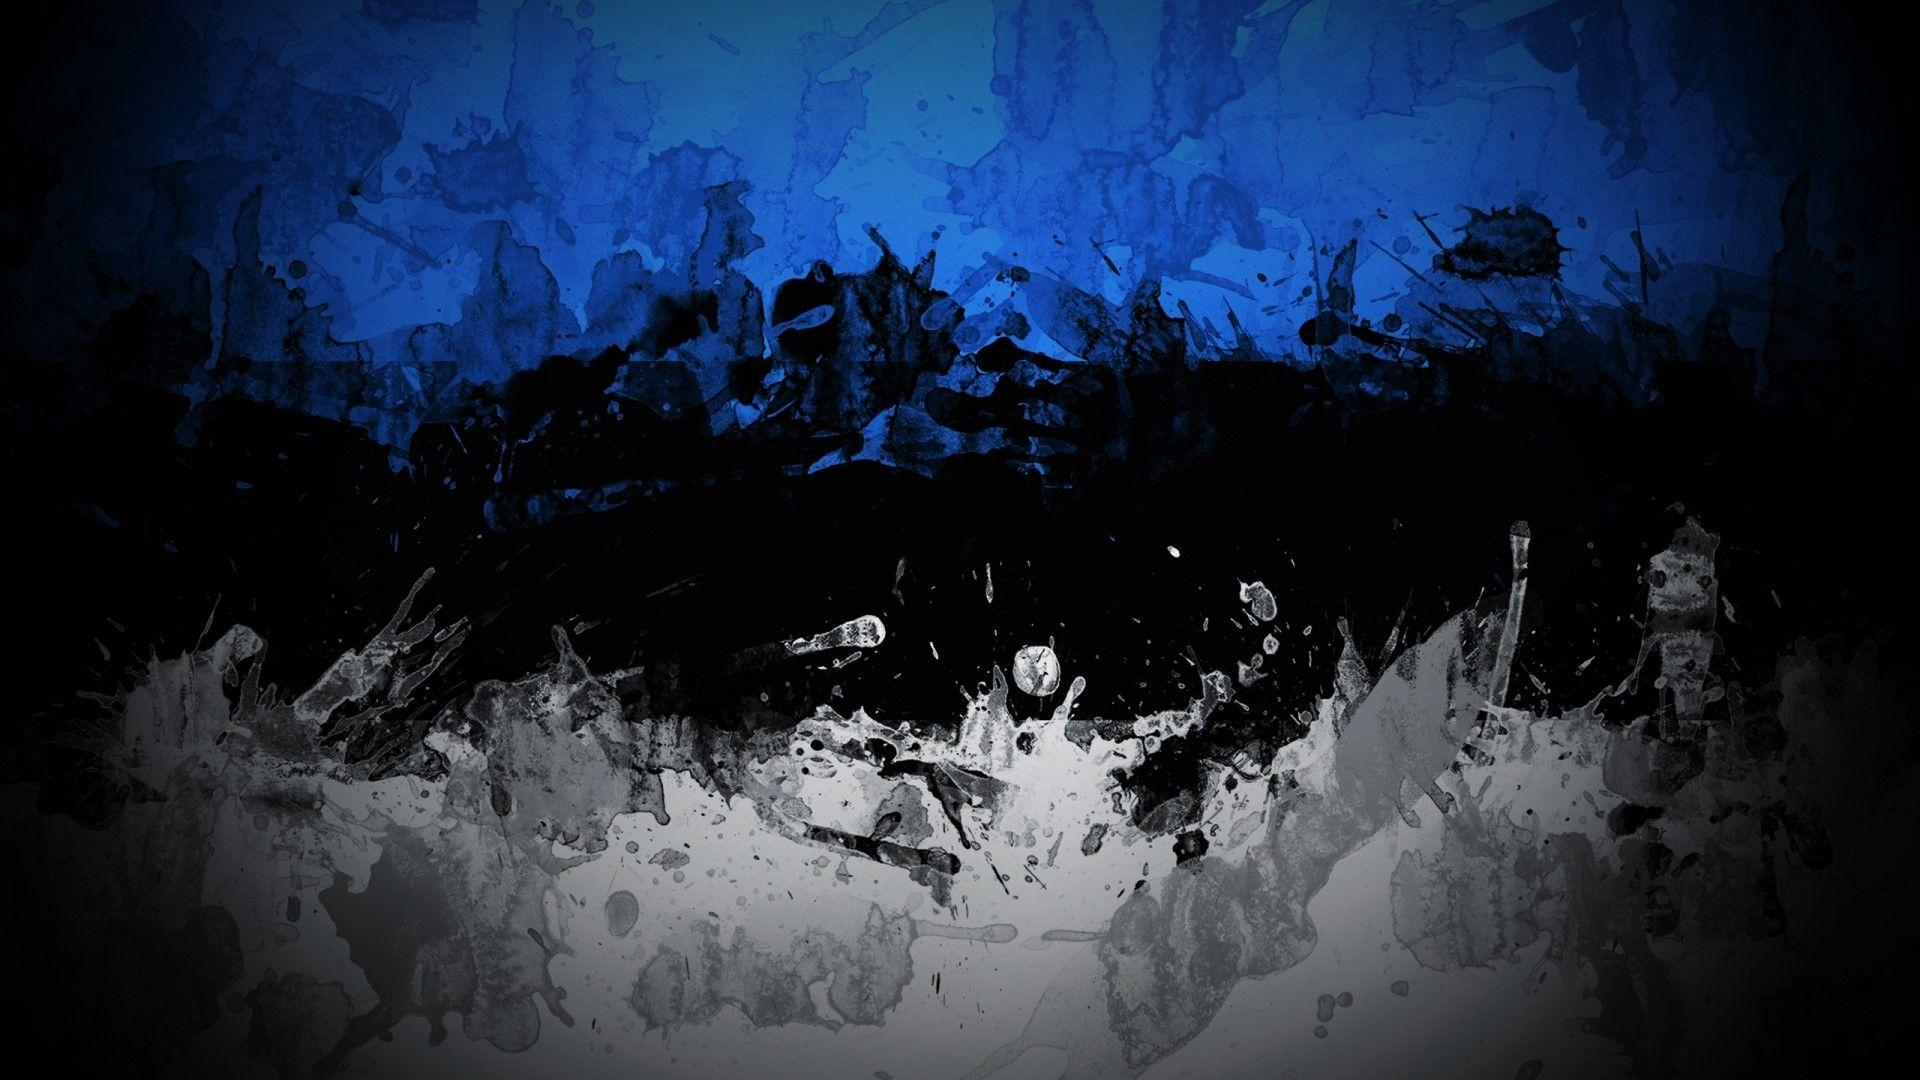 abstract, Blue, Dark, Black, White, Colorful, Estonia Wallpapers